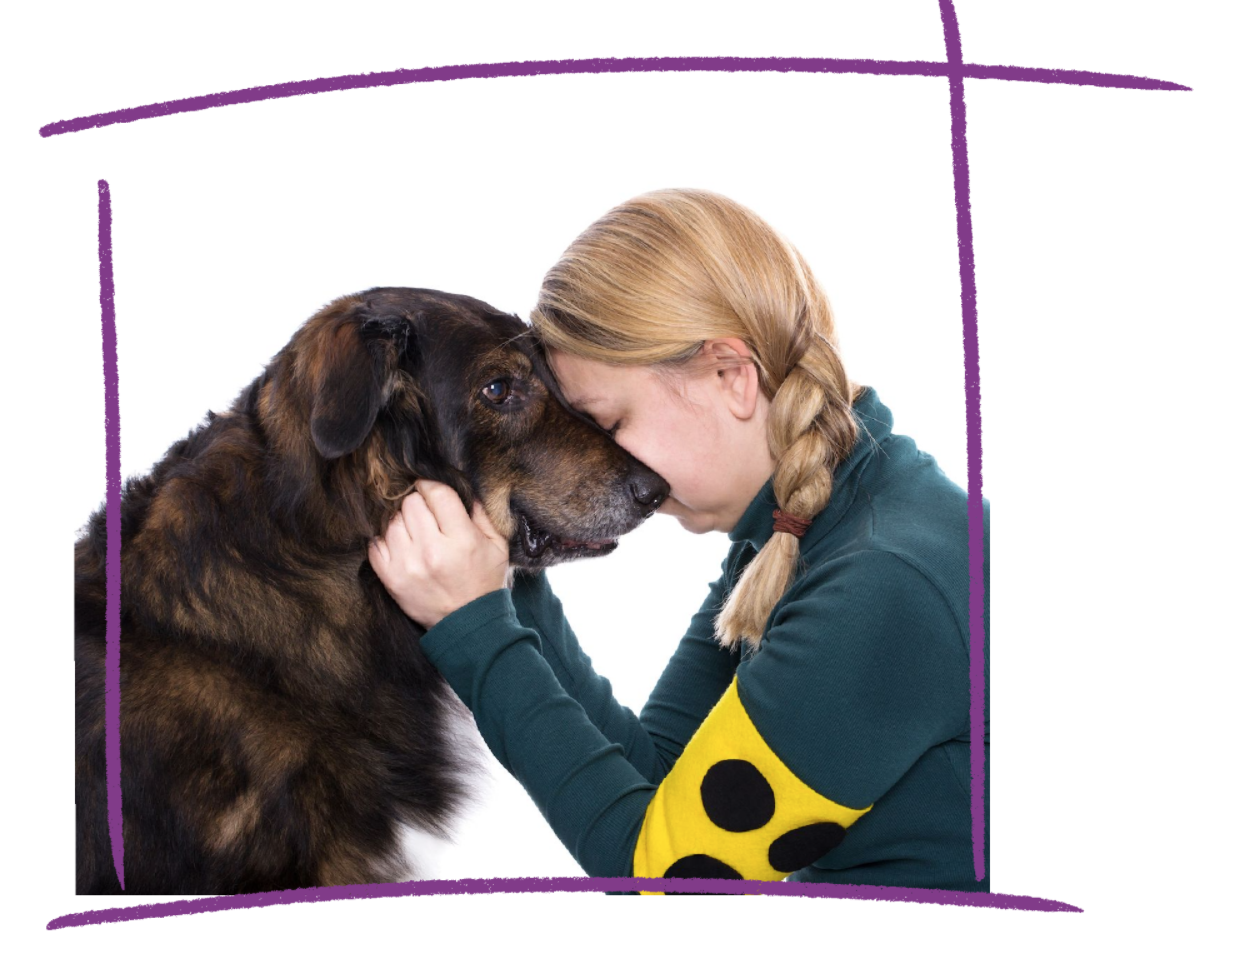 Photo of a woman with blonde plaited her kneeling and holding her head against a brown dog.